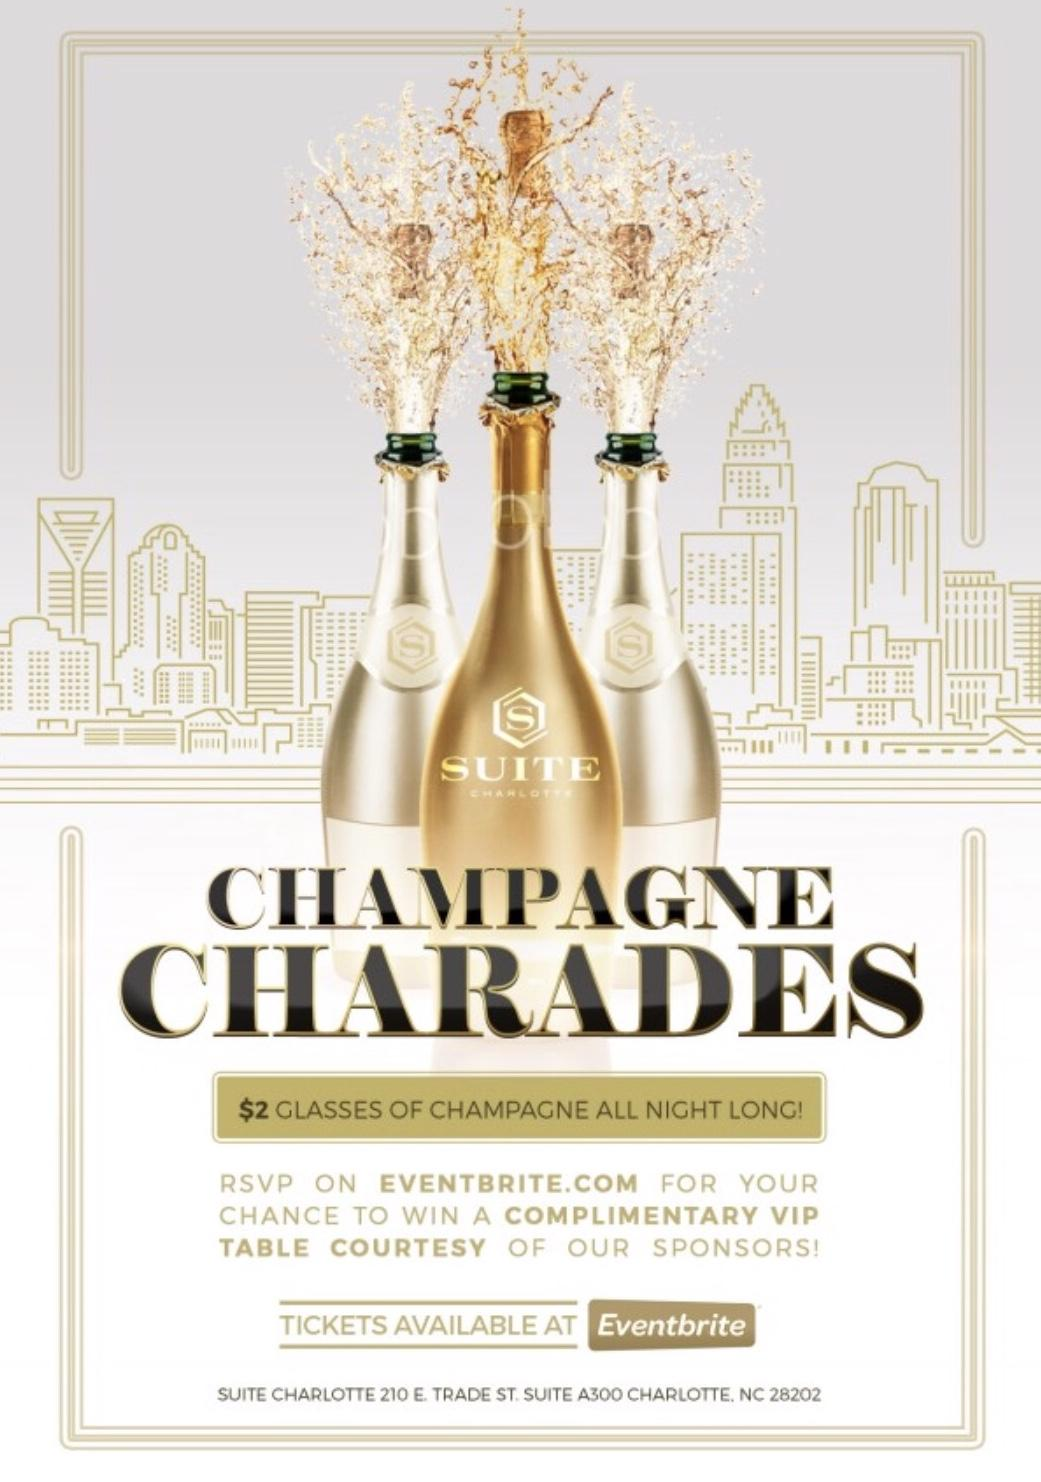 Champagne Charades!